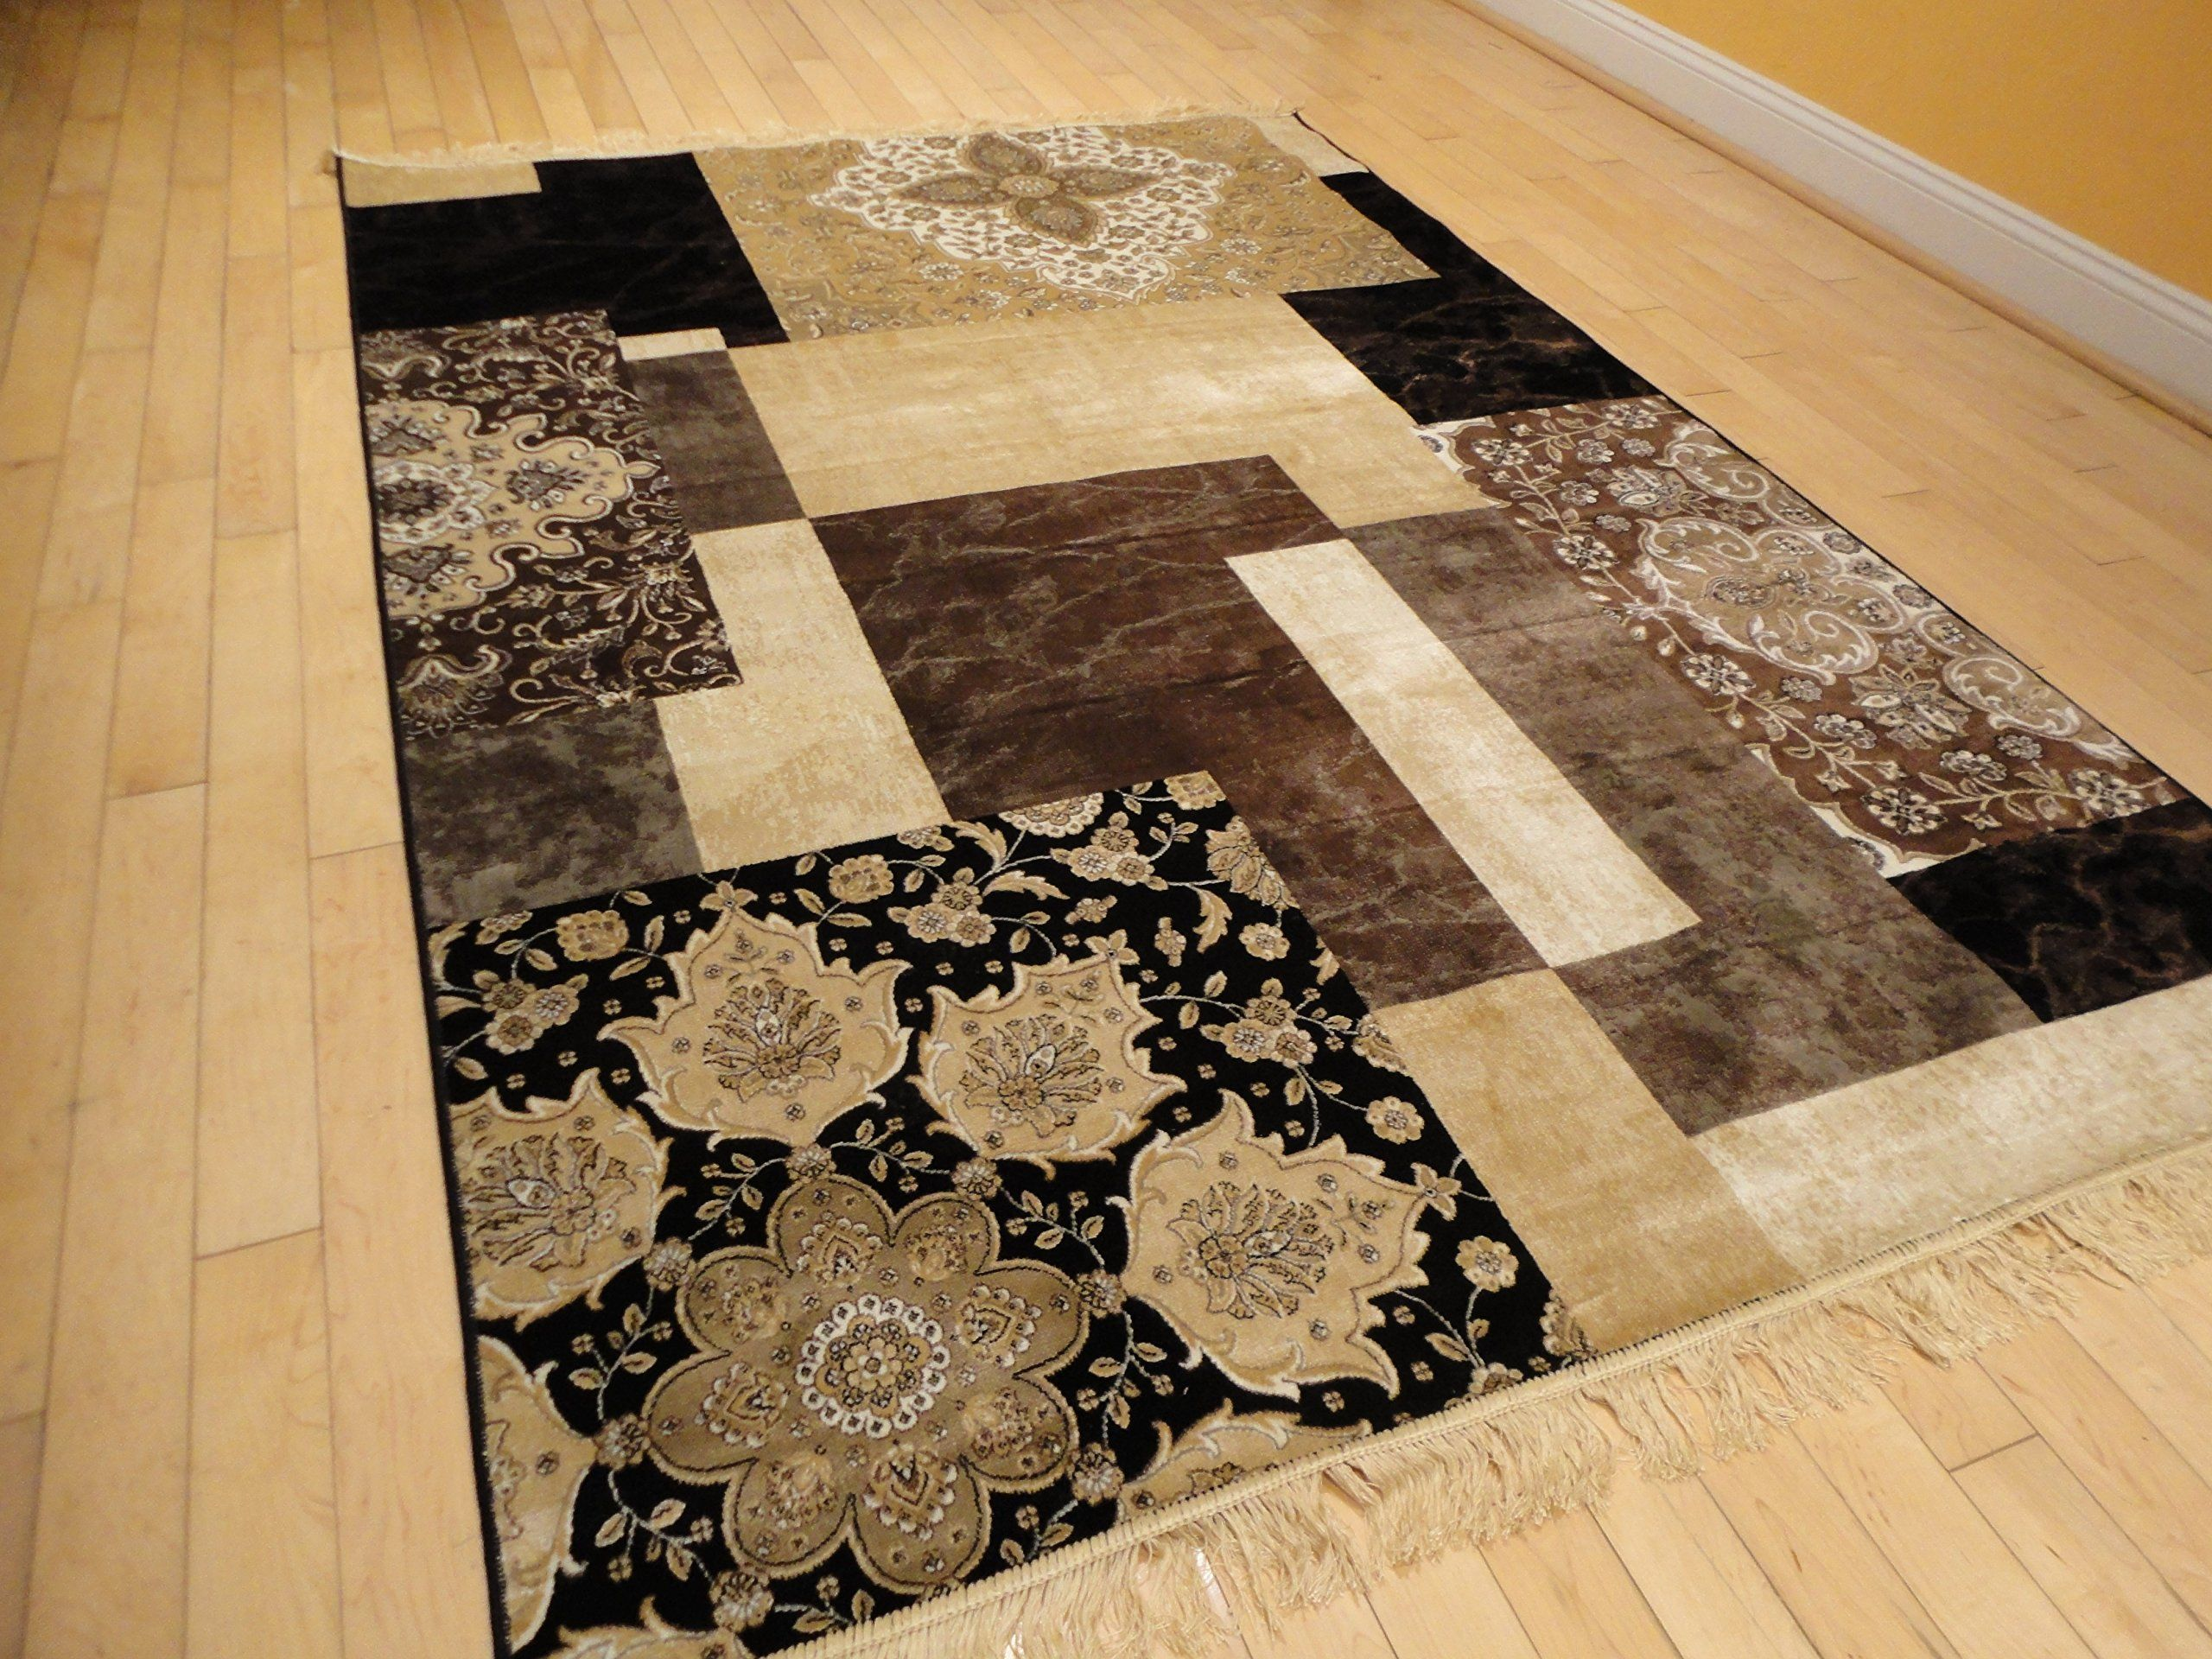 Luxury Silk Area Rugs 5x8 Modern Rug For Living Room Black Brown